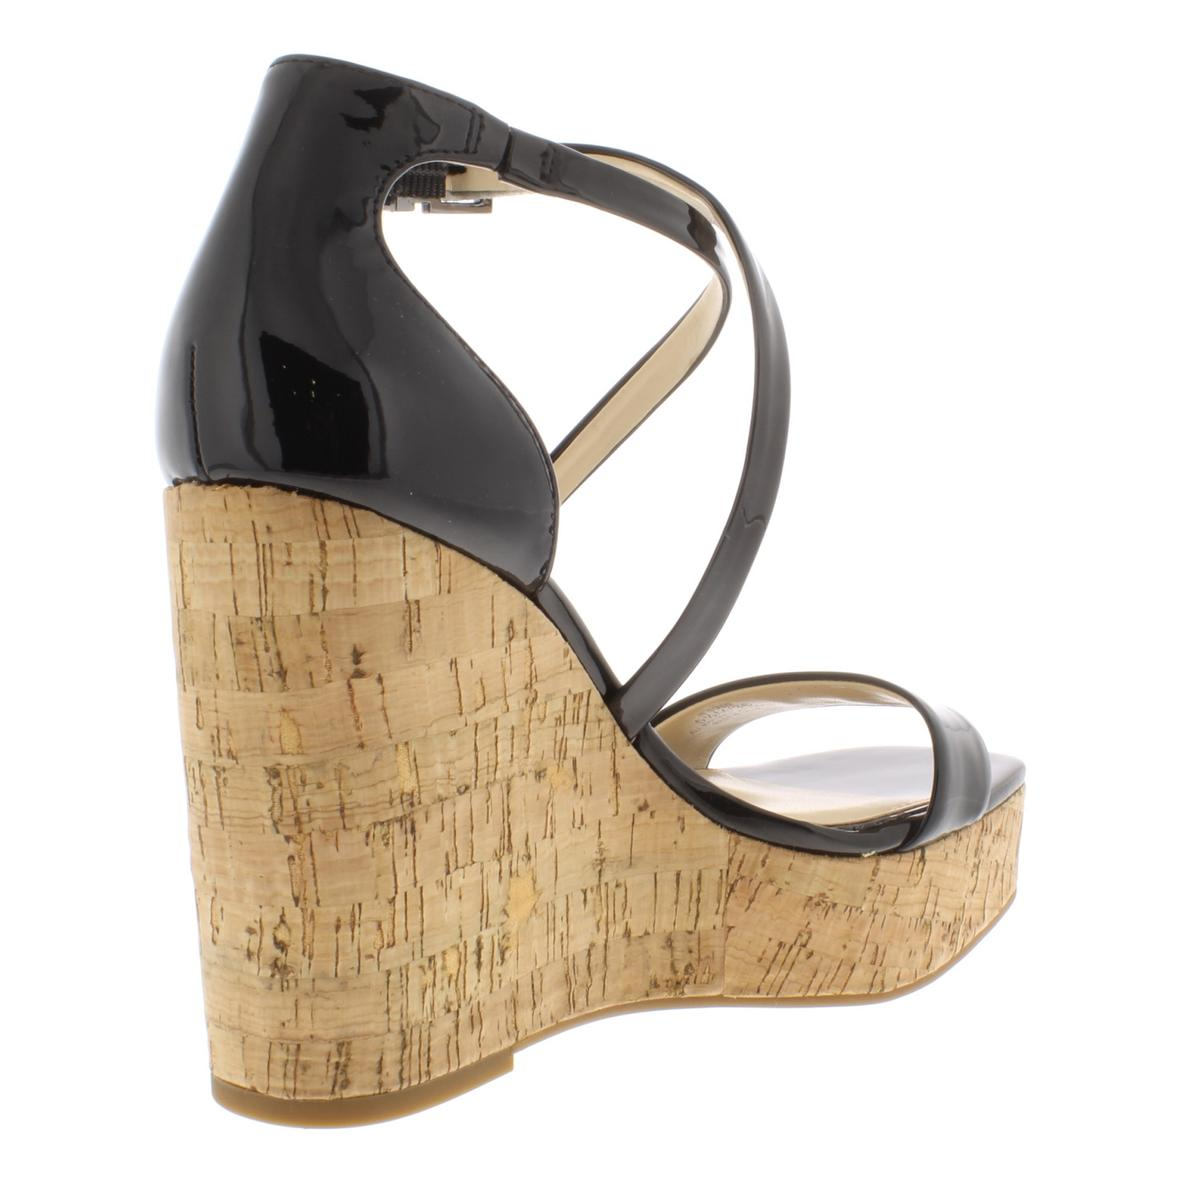 Jessica-Simpson-Womens-Stassi-Solid-Platform-Wedges-Sandals-BHFO-6733 thumbnail 6